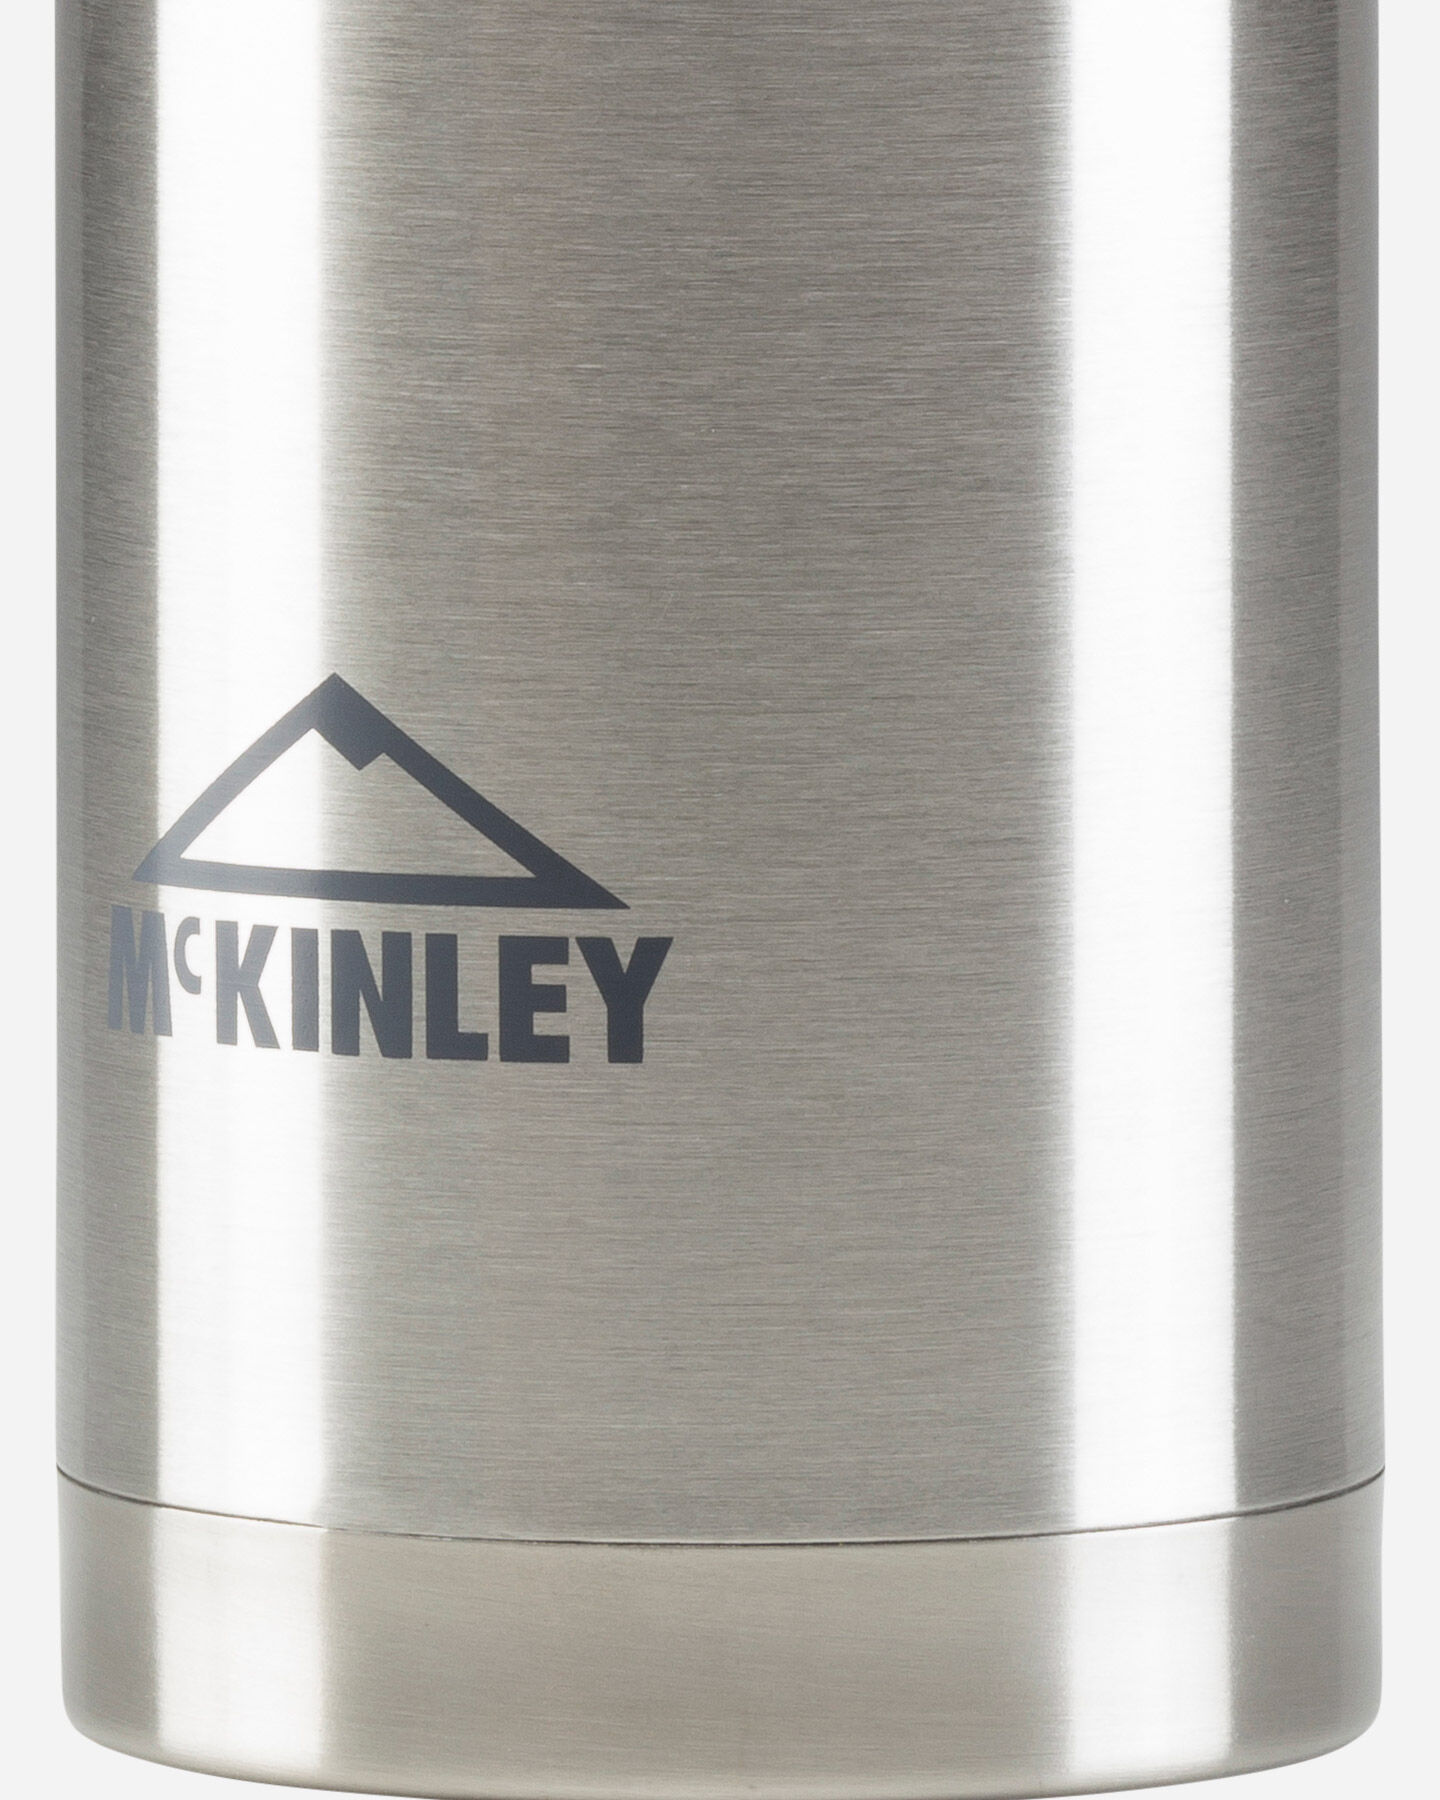 Accessorio camping MCKINLEY STAINLESS STEEL 1,00 S2002844|869|1,00 scatto 1